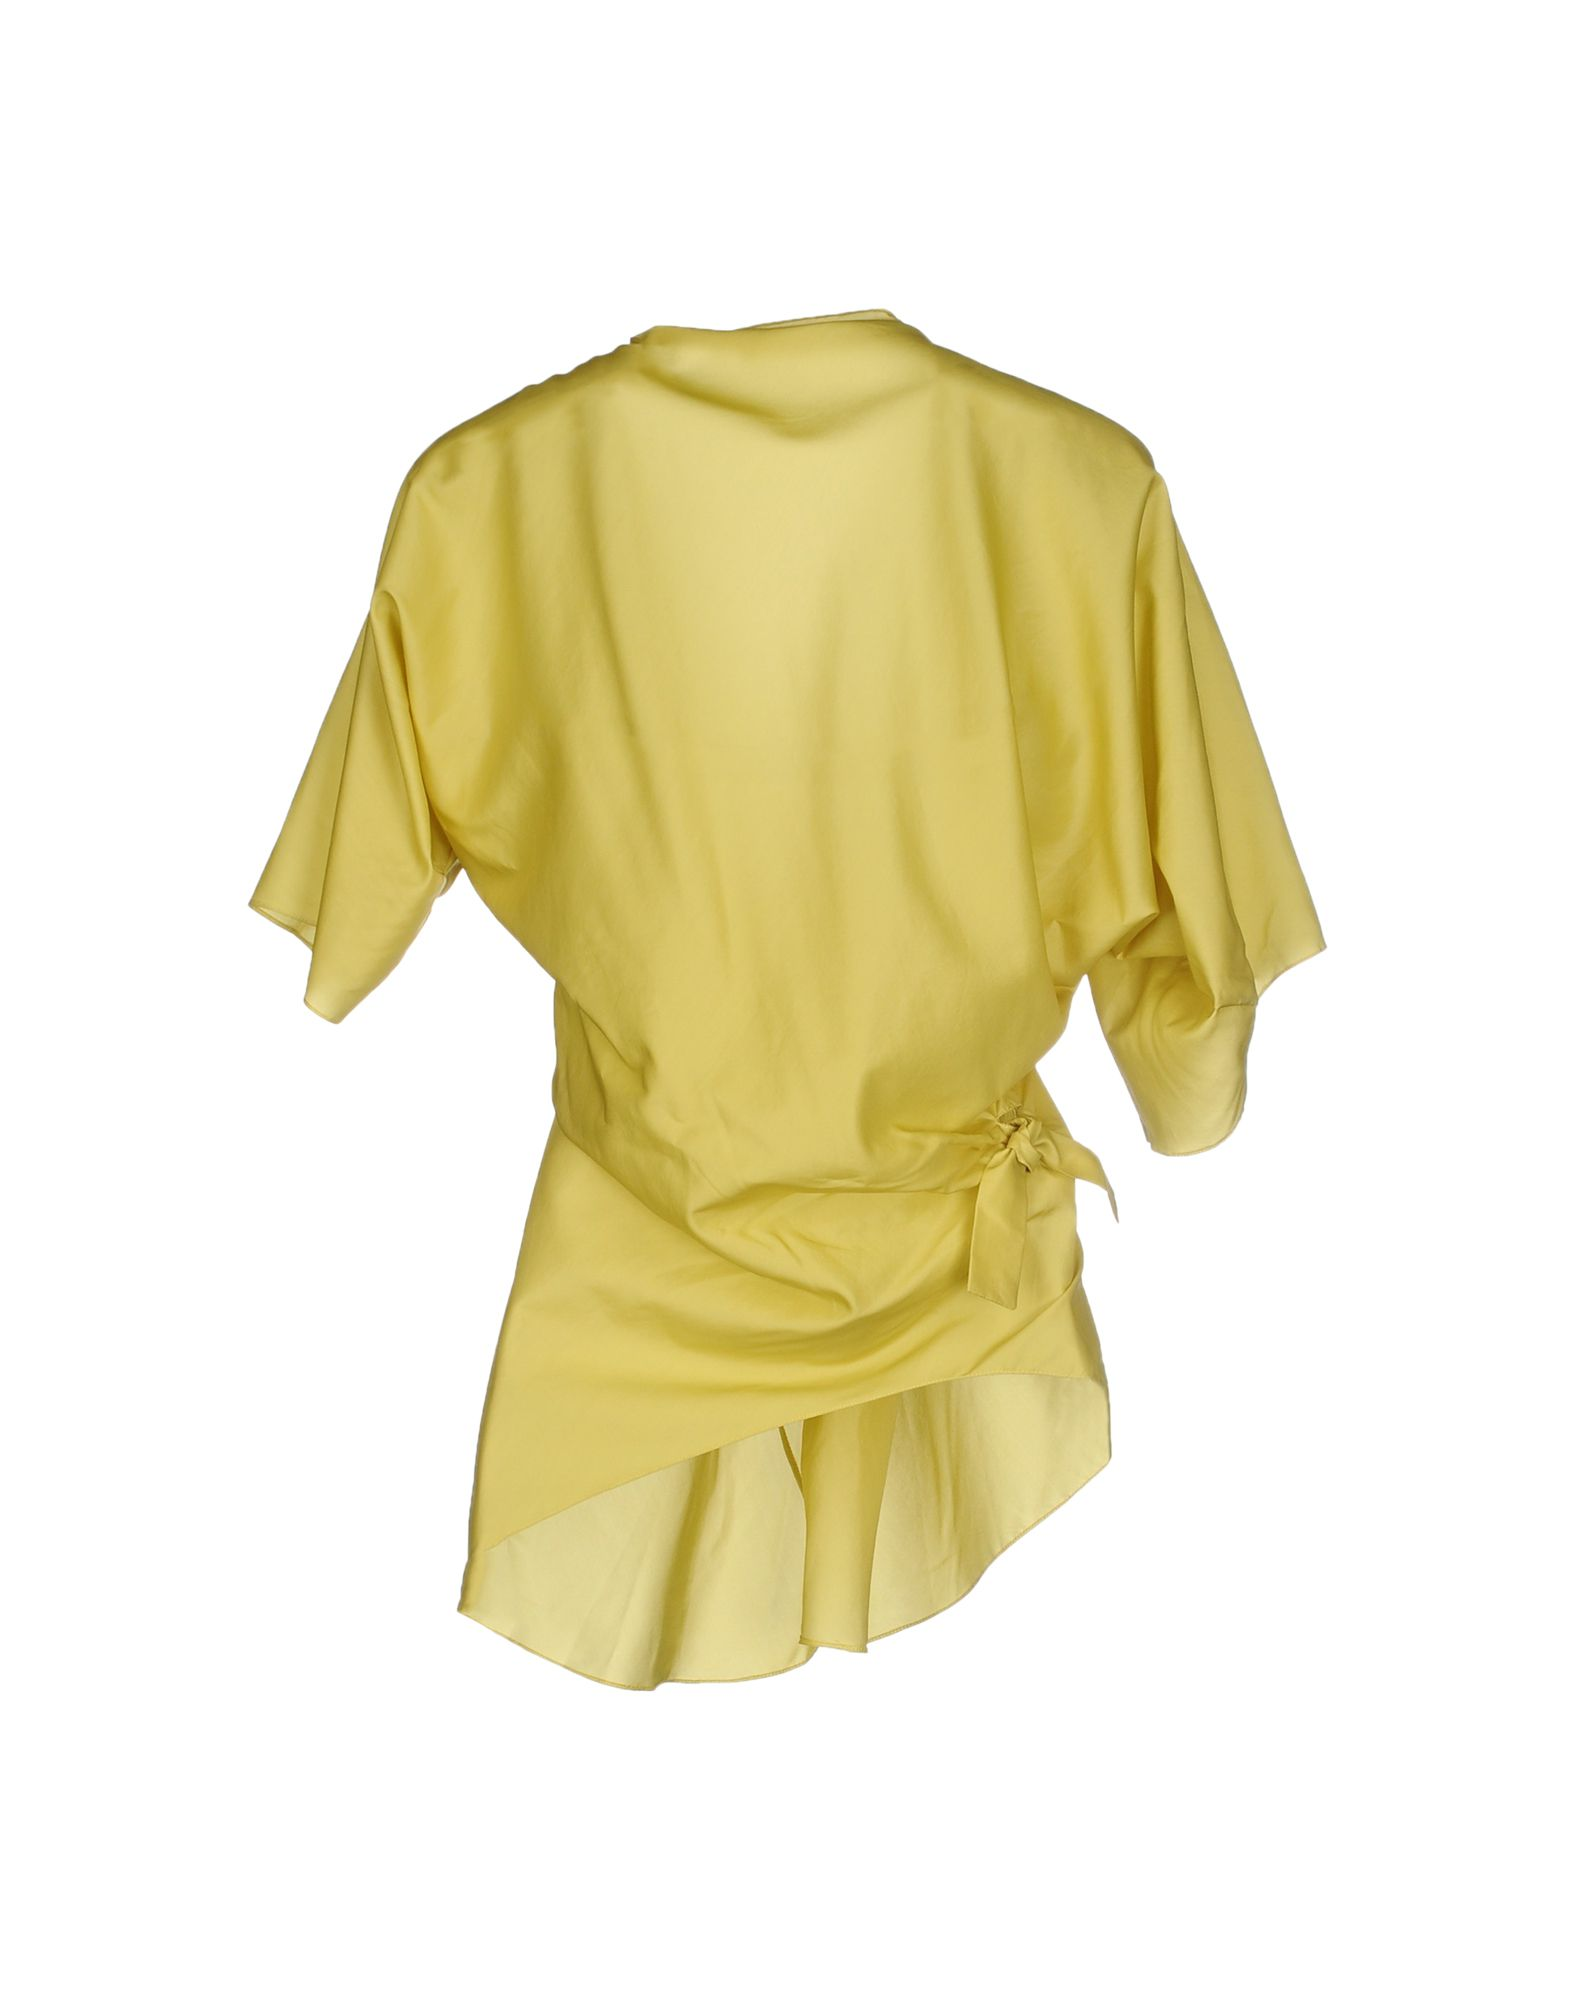 Marni yellow blouse1